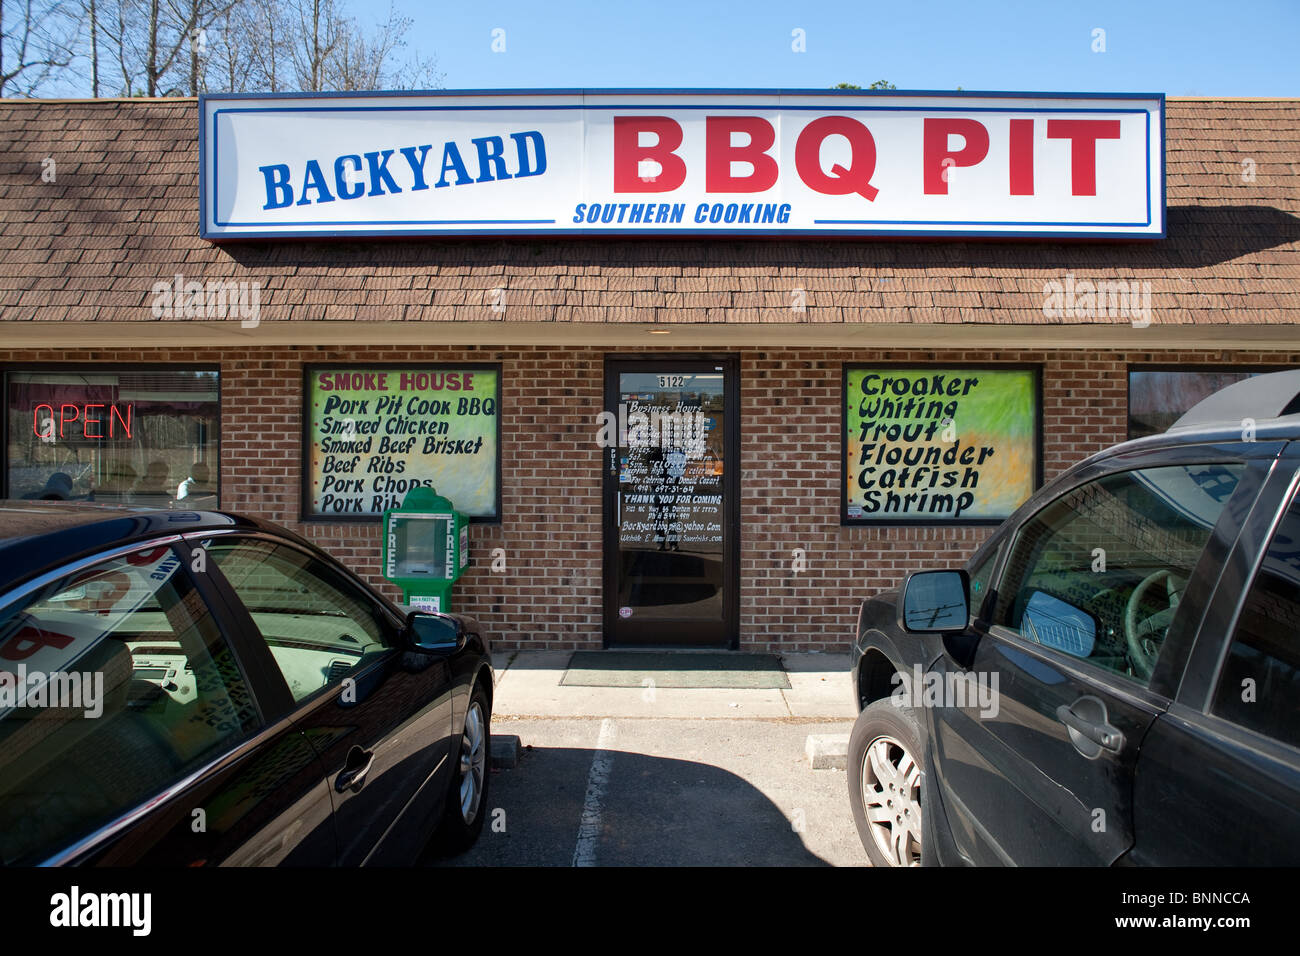 backyard bbq pit restaurant southern style bbq stock photo